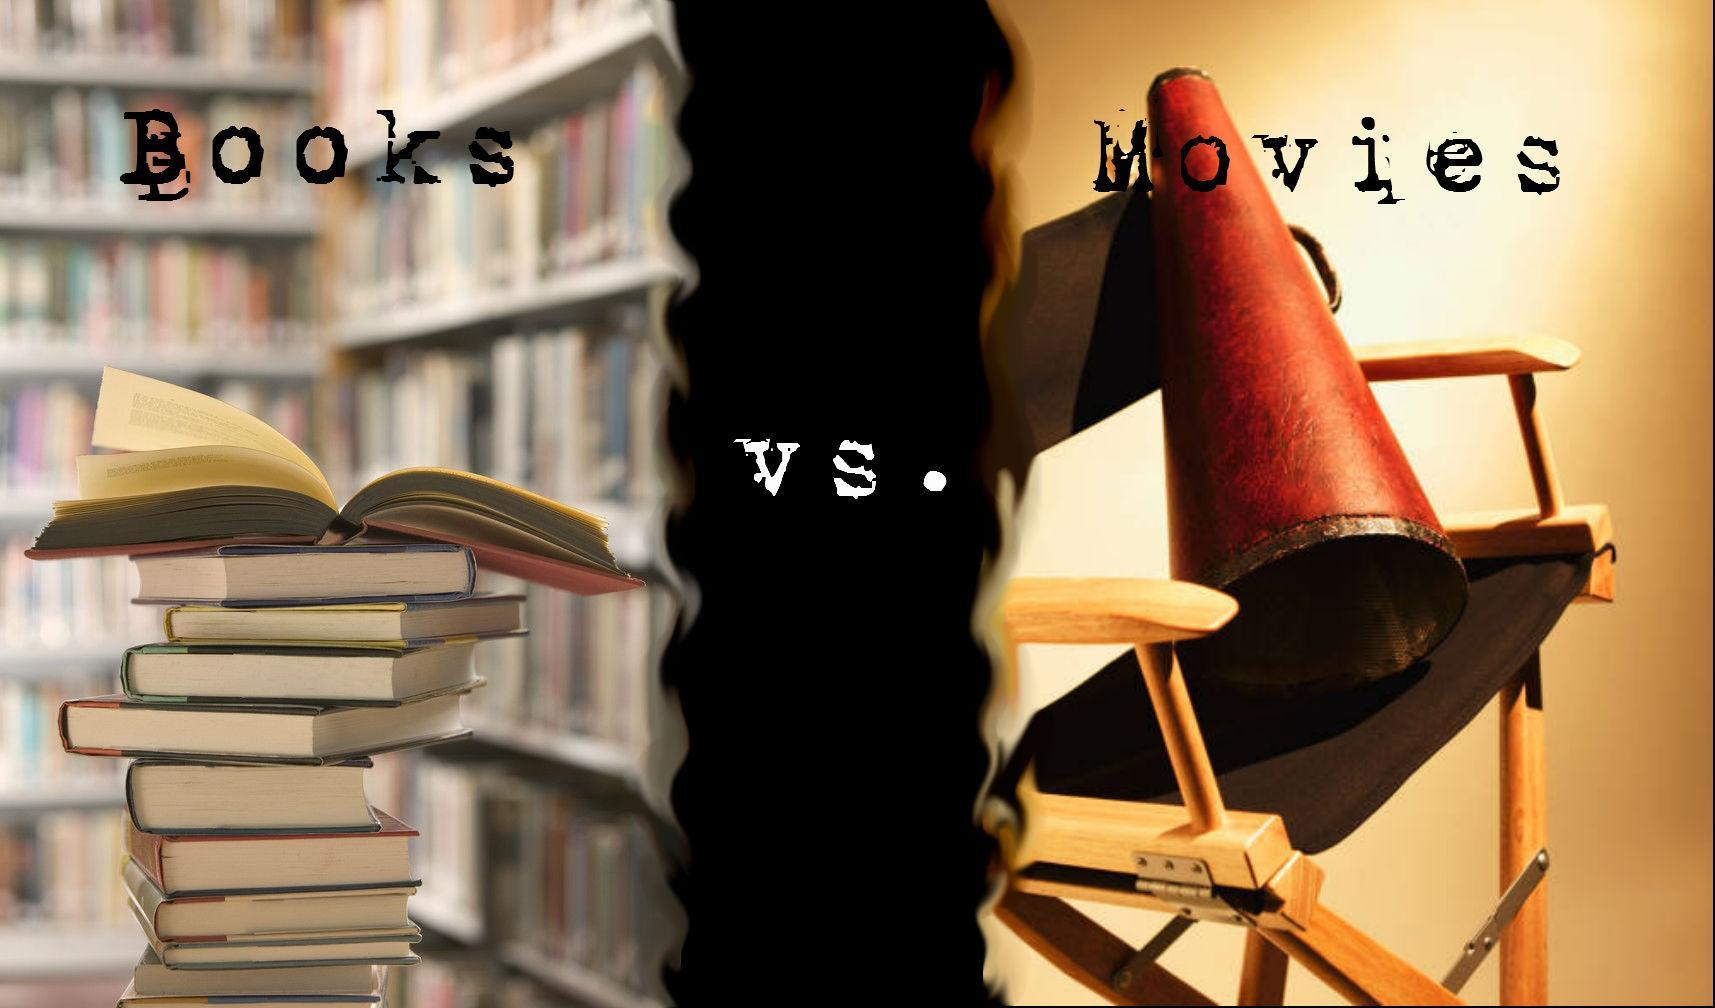 What do you enjoy more? The books or the movie?